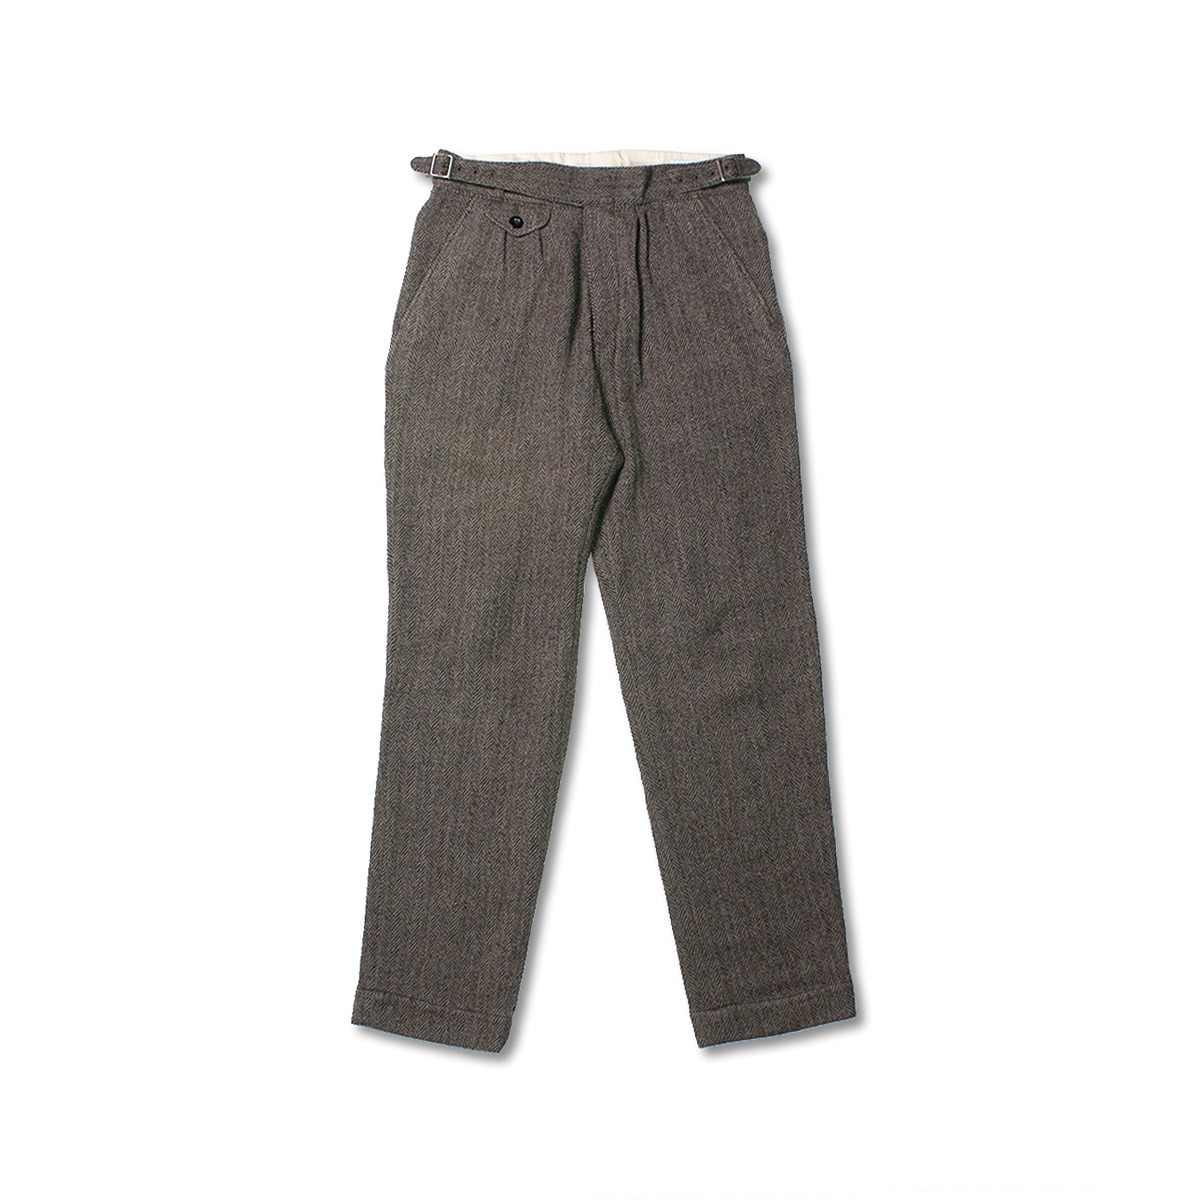 [KENNETH FIELD] GURKA 2 TROUSER WOOL HERRINGBONE 'BROWN'